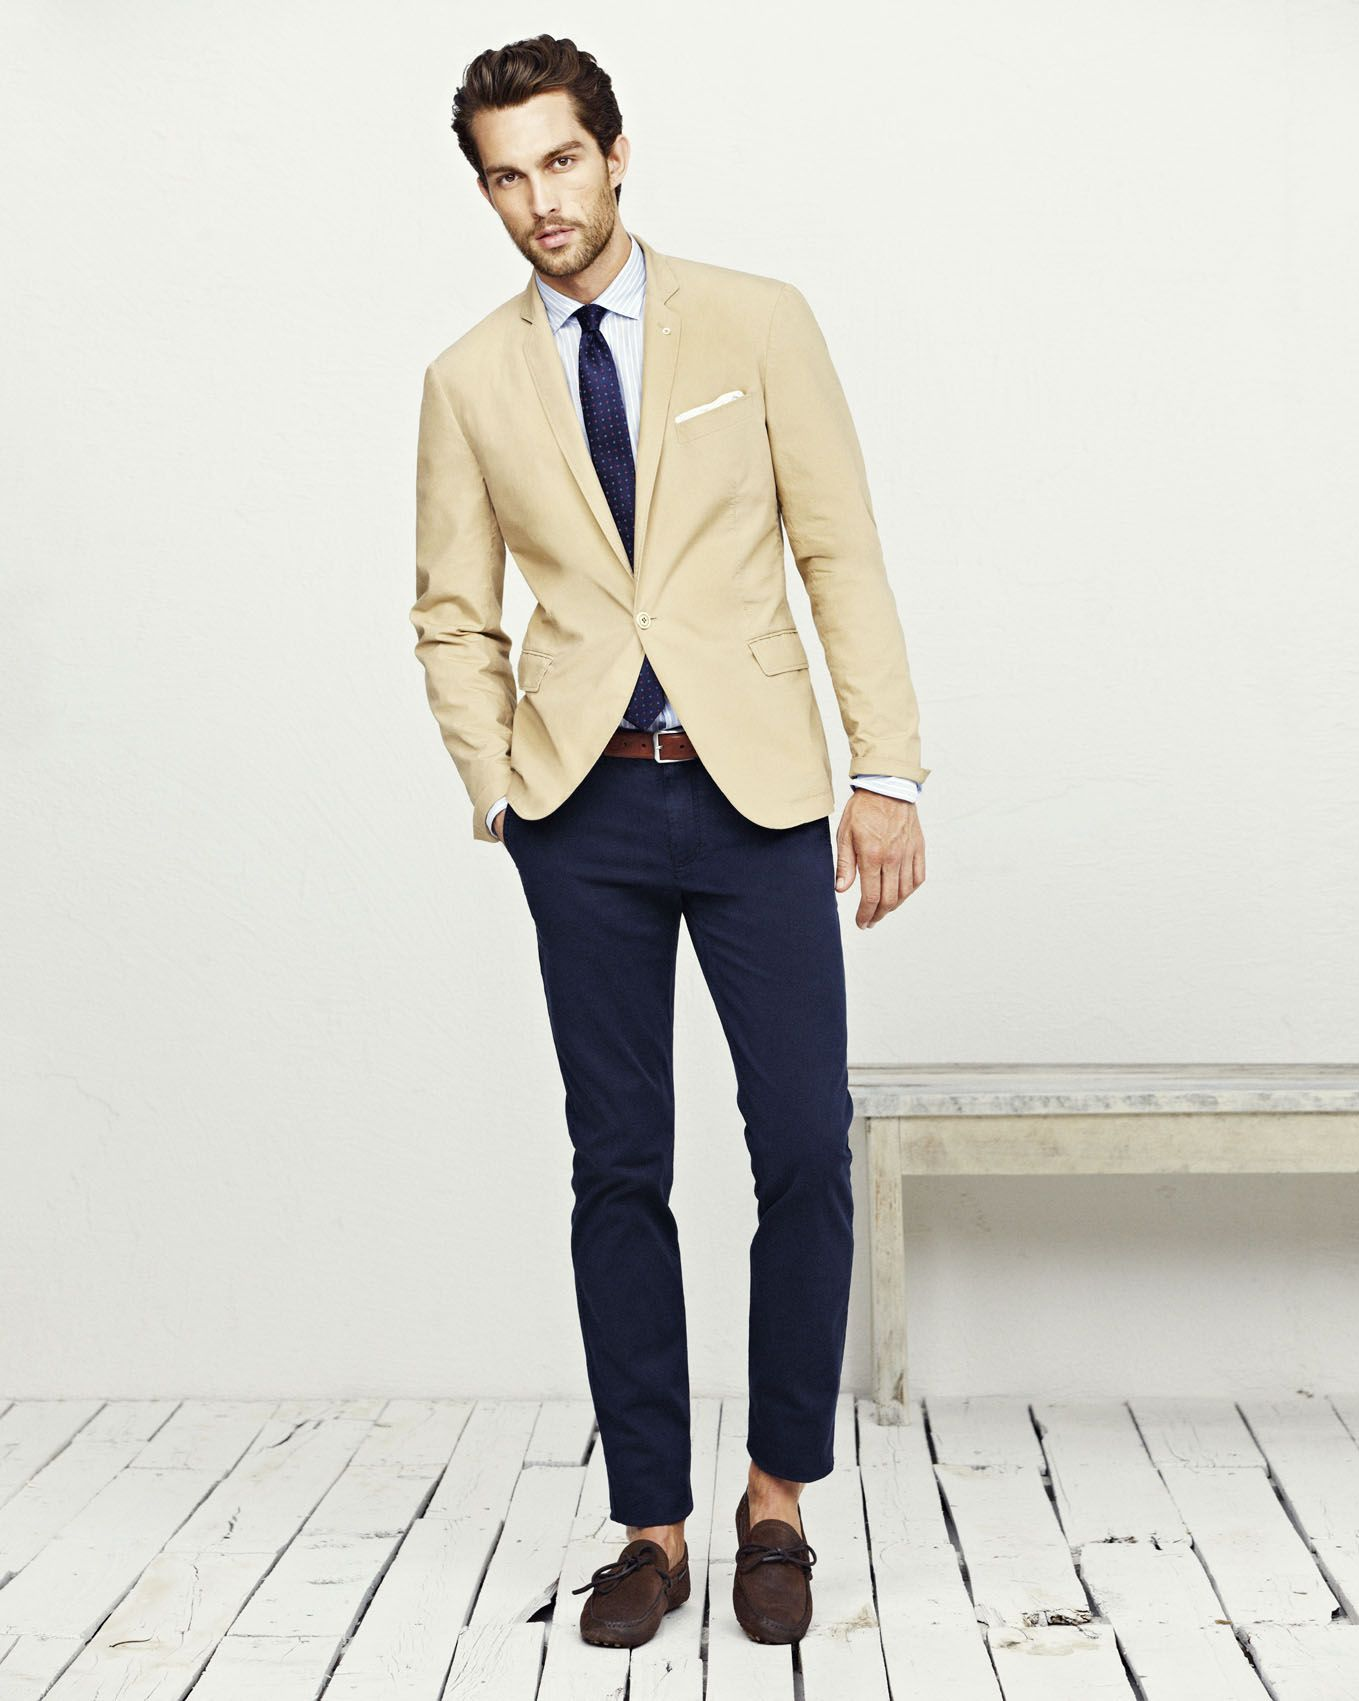 6cc6d4923c0 #SS13 #Summer #Men #HEbyMANGO #NewCollection Elegant Outfit, Leather Shoes,